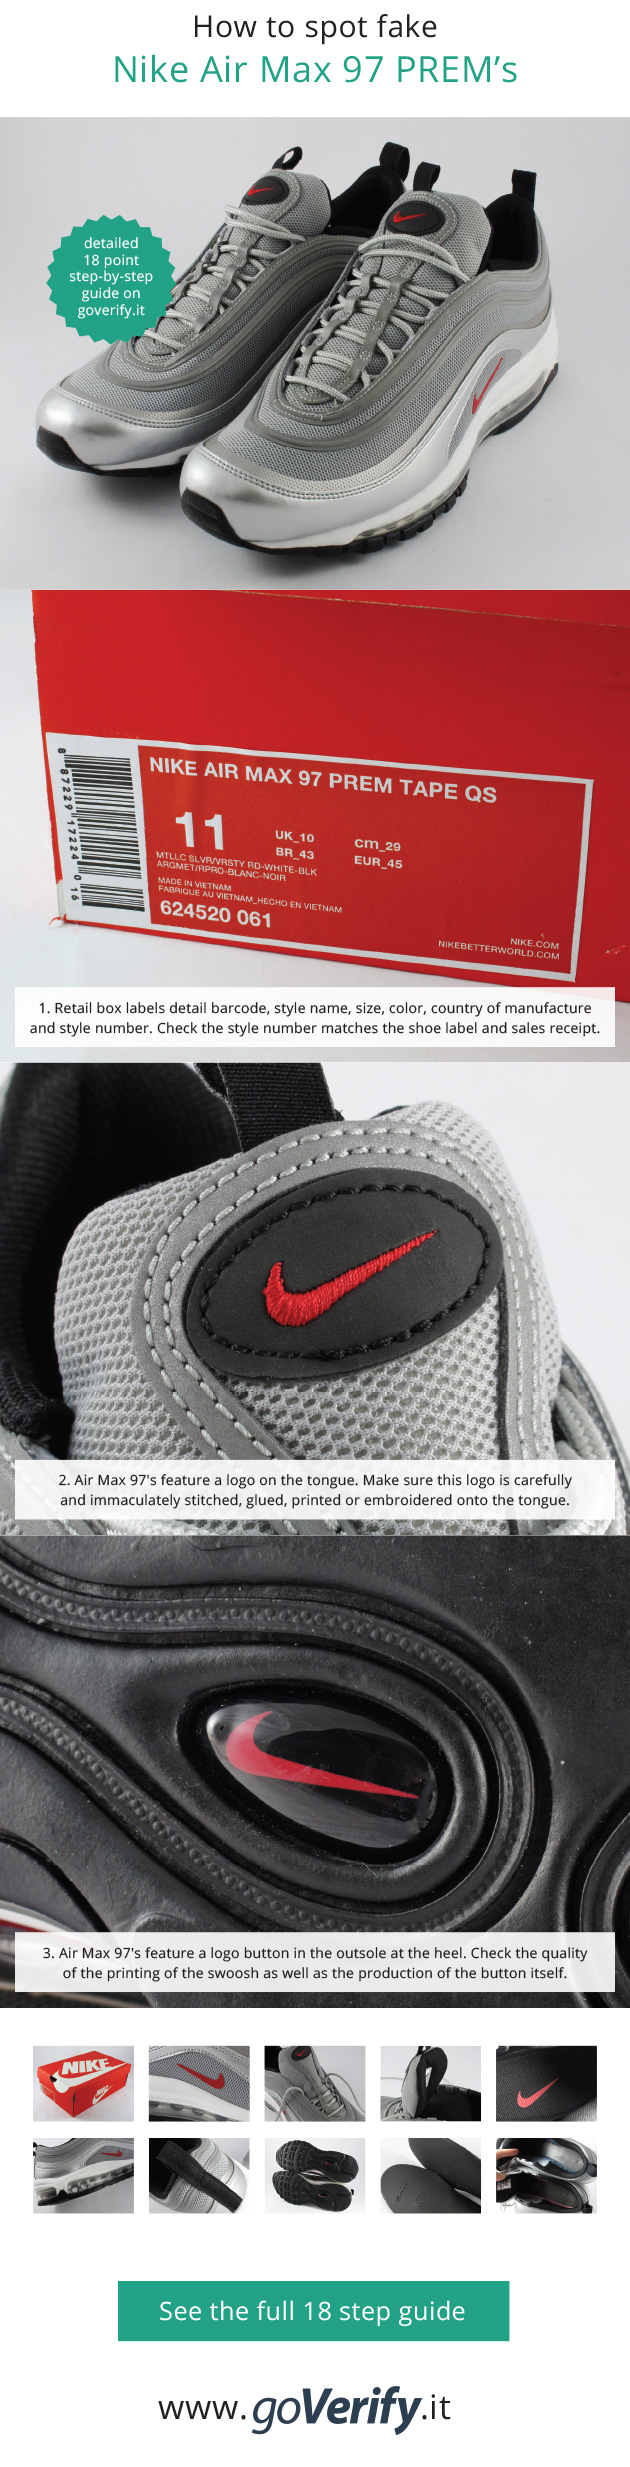 a13eaaf370d How to spot fake Nike Air Max 97's, go to www.goverify.it for a full ...